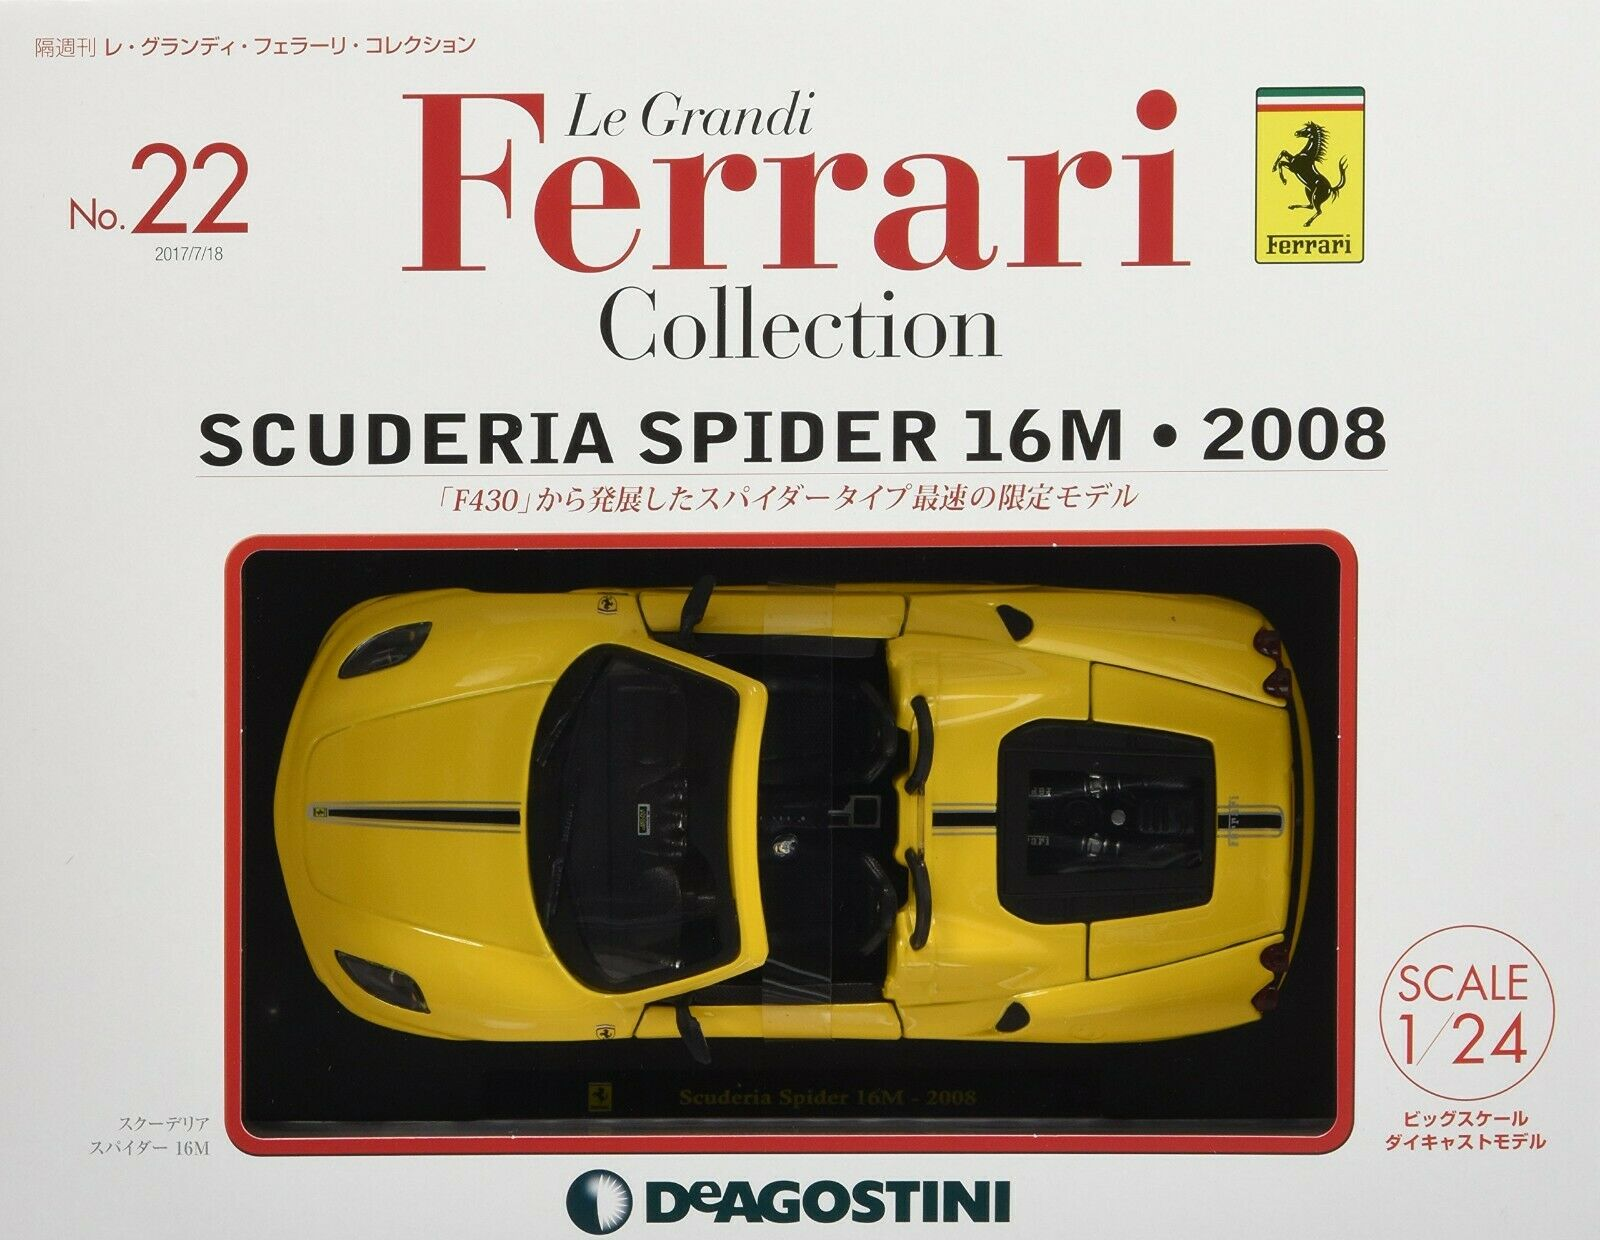 DeAgostini SCUDERIA SPIDER 16M 2008 1 24 Le Grandi Ferrari Collection JAPAN F S